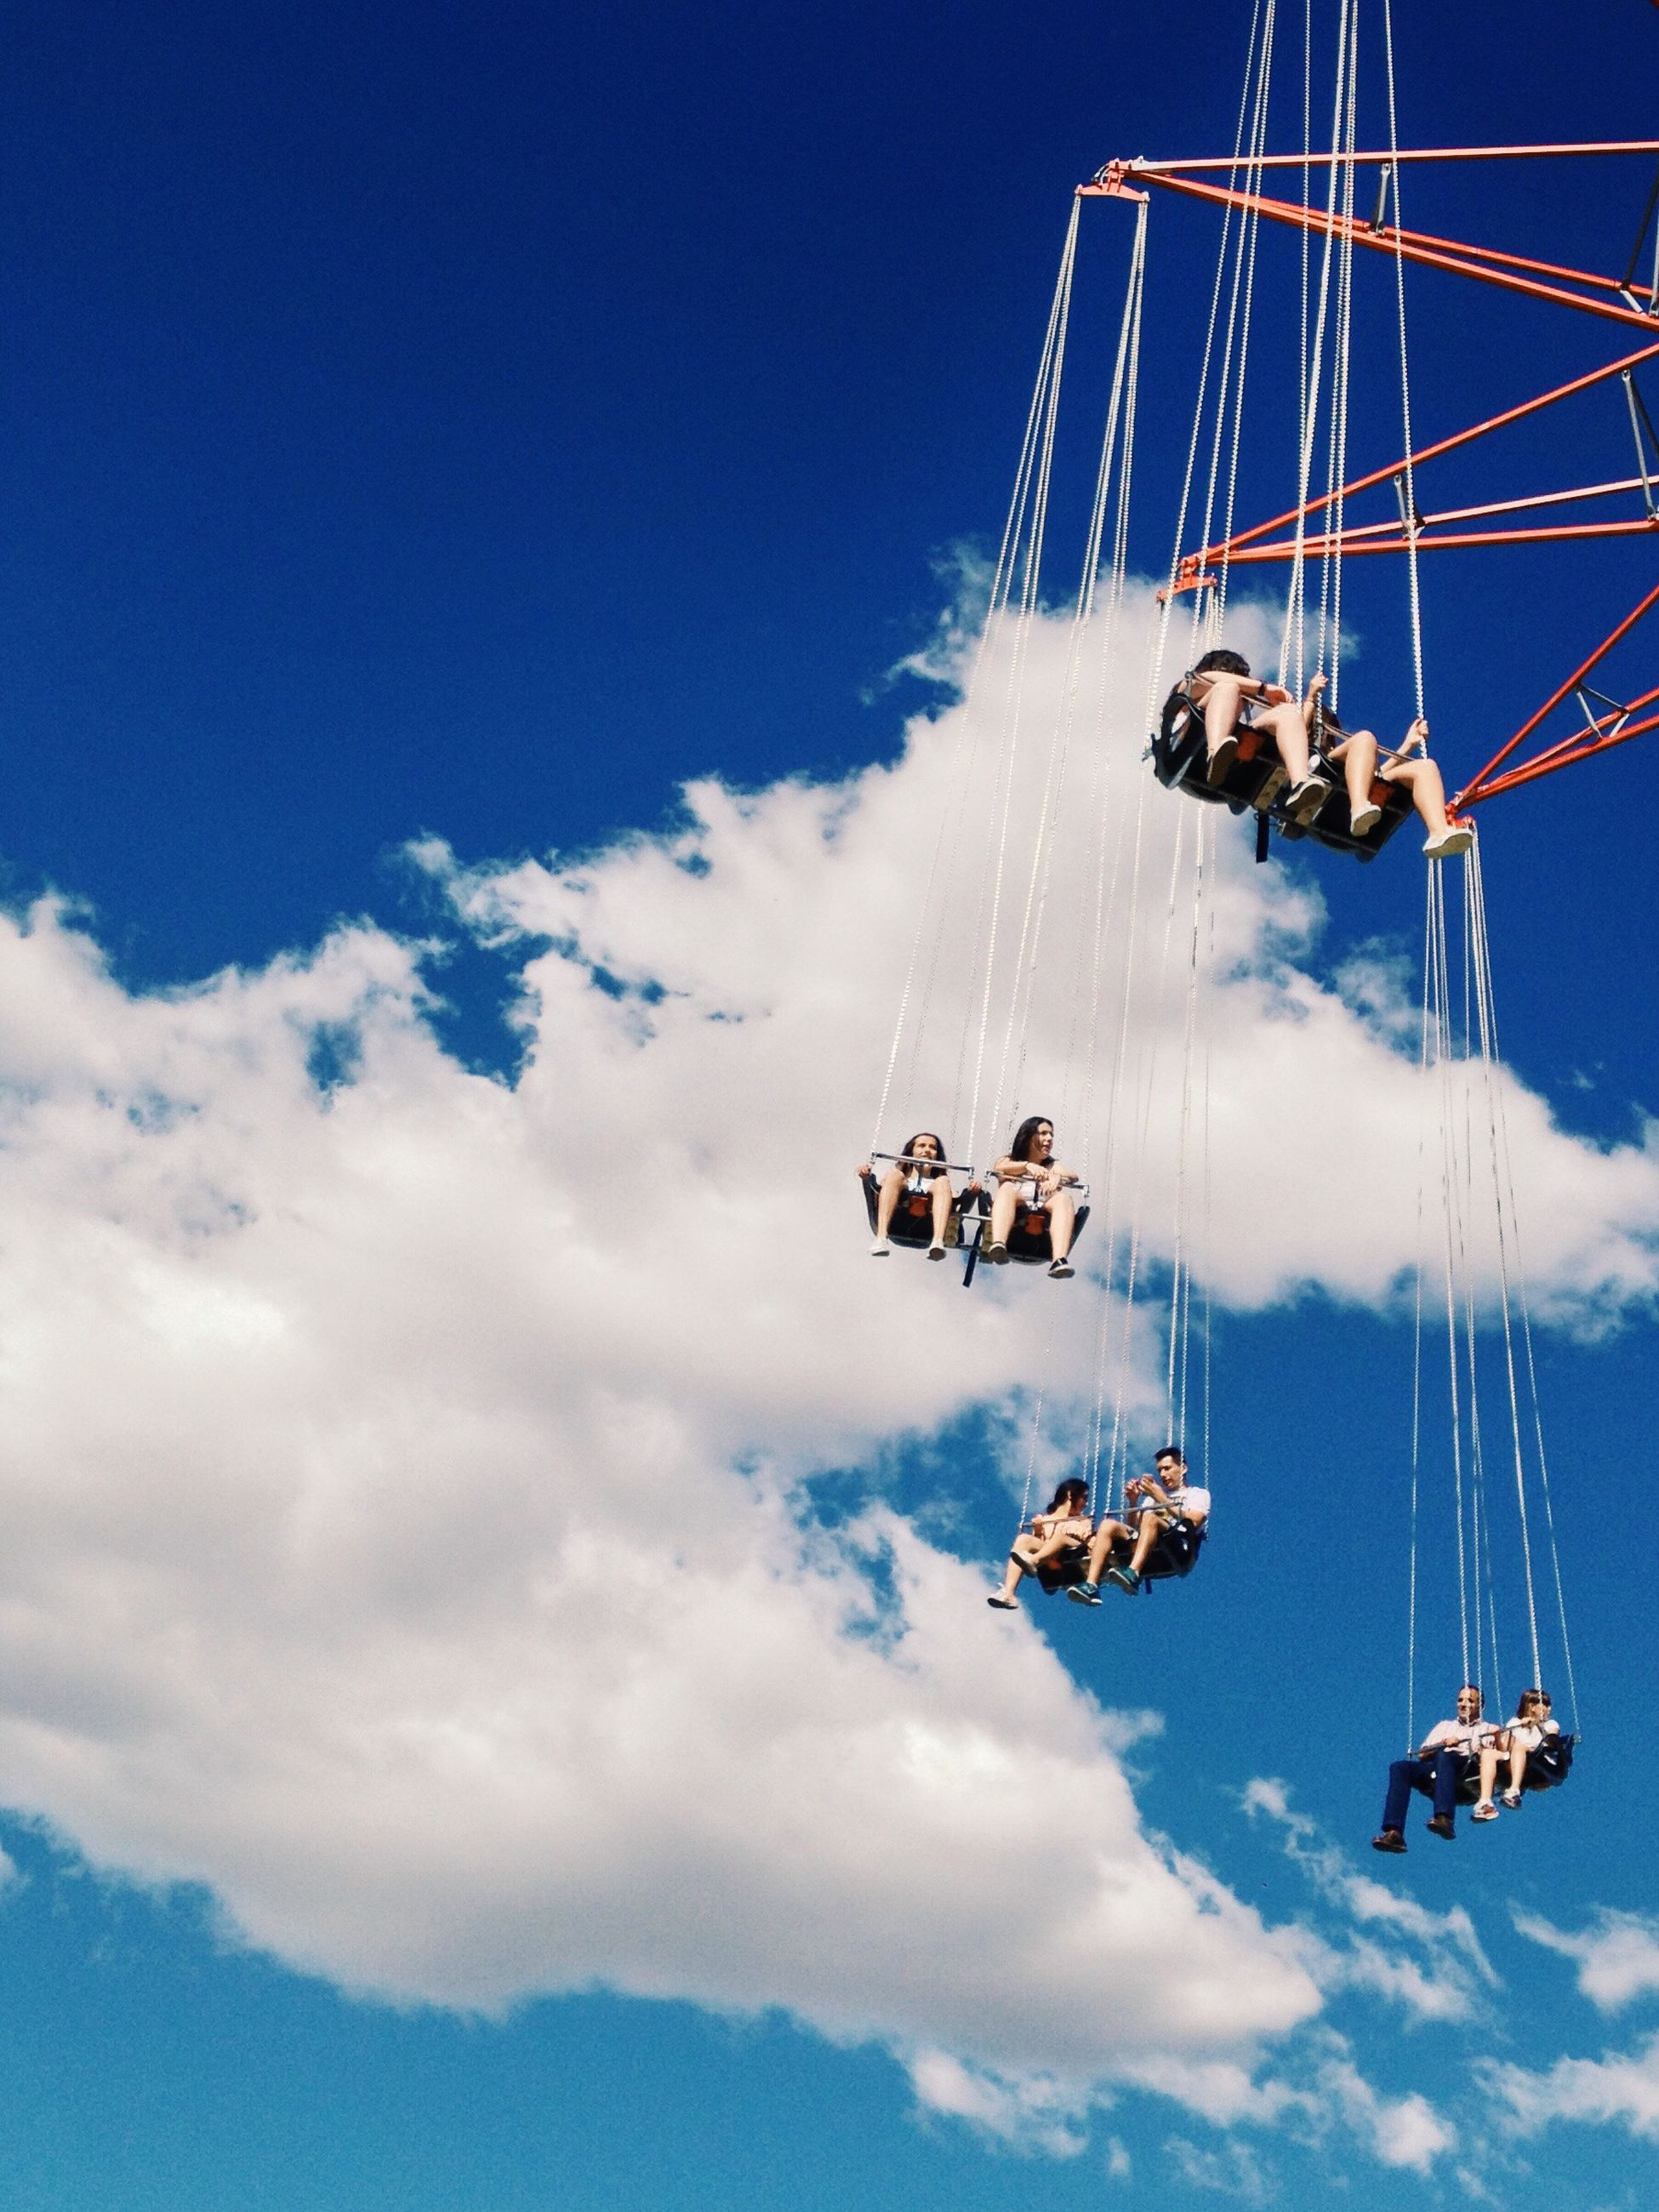 transportation, mode of transport, sky, nautical vessel, low angle view, travel, cloud - sky, mast, leisure activity, crane - construction machinery, outdoors, men, blue, day, boat, cloud, sunlight, lifestyles, nature